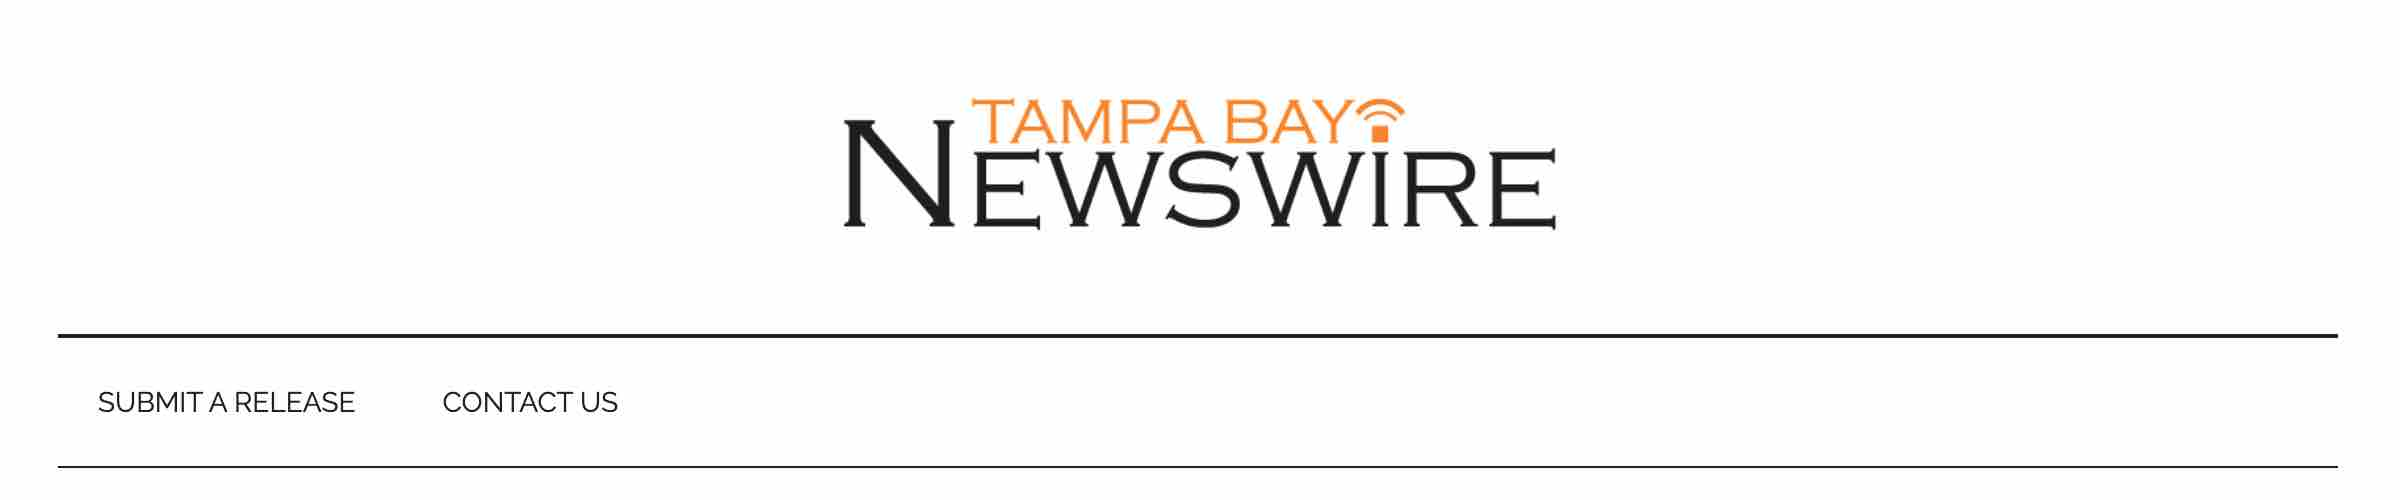 Tampa Bay Newswire Banner Title